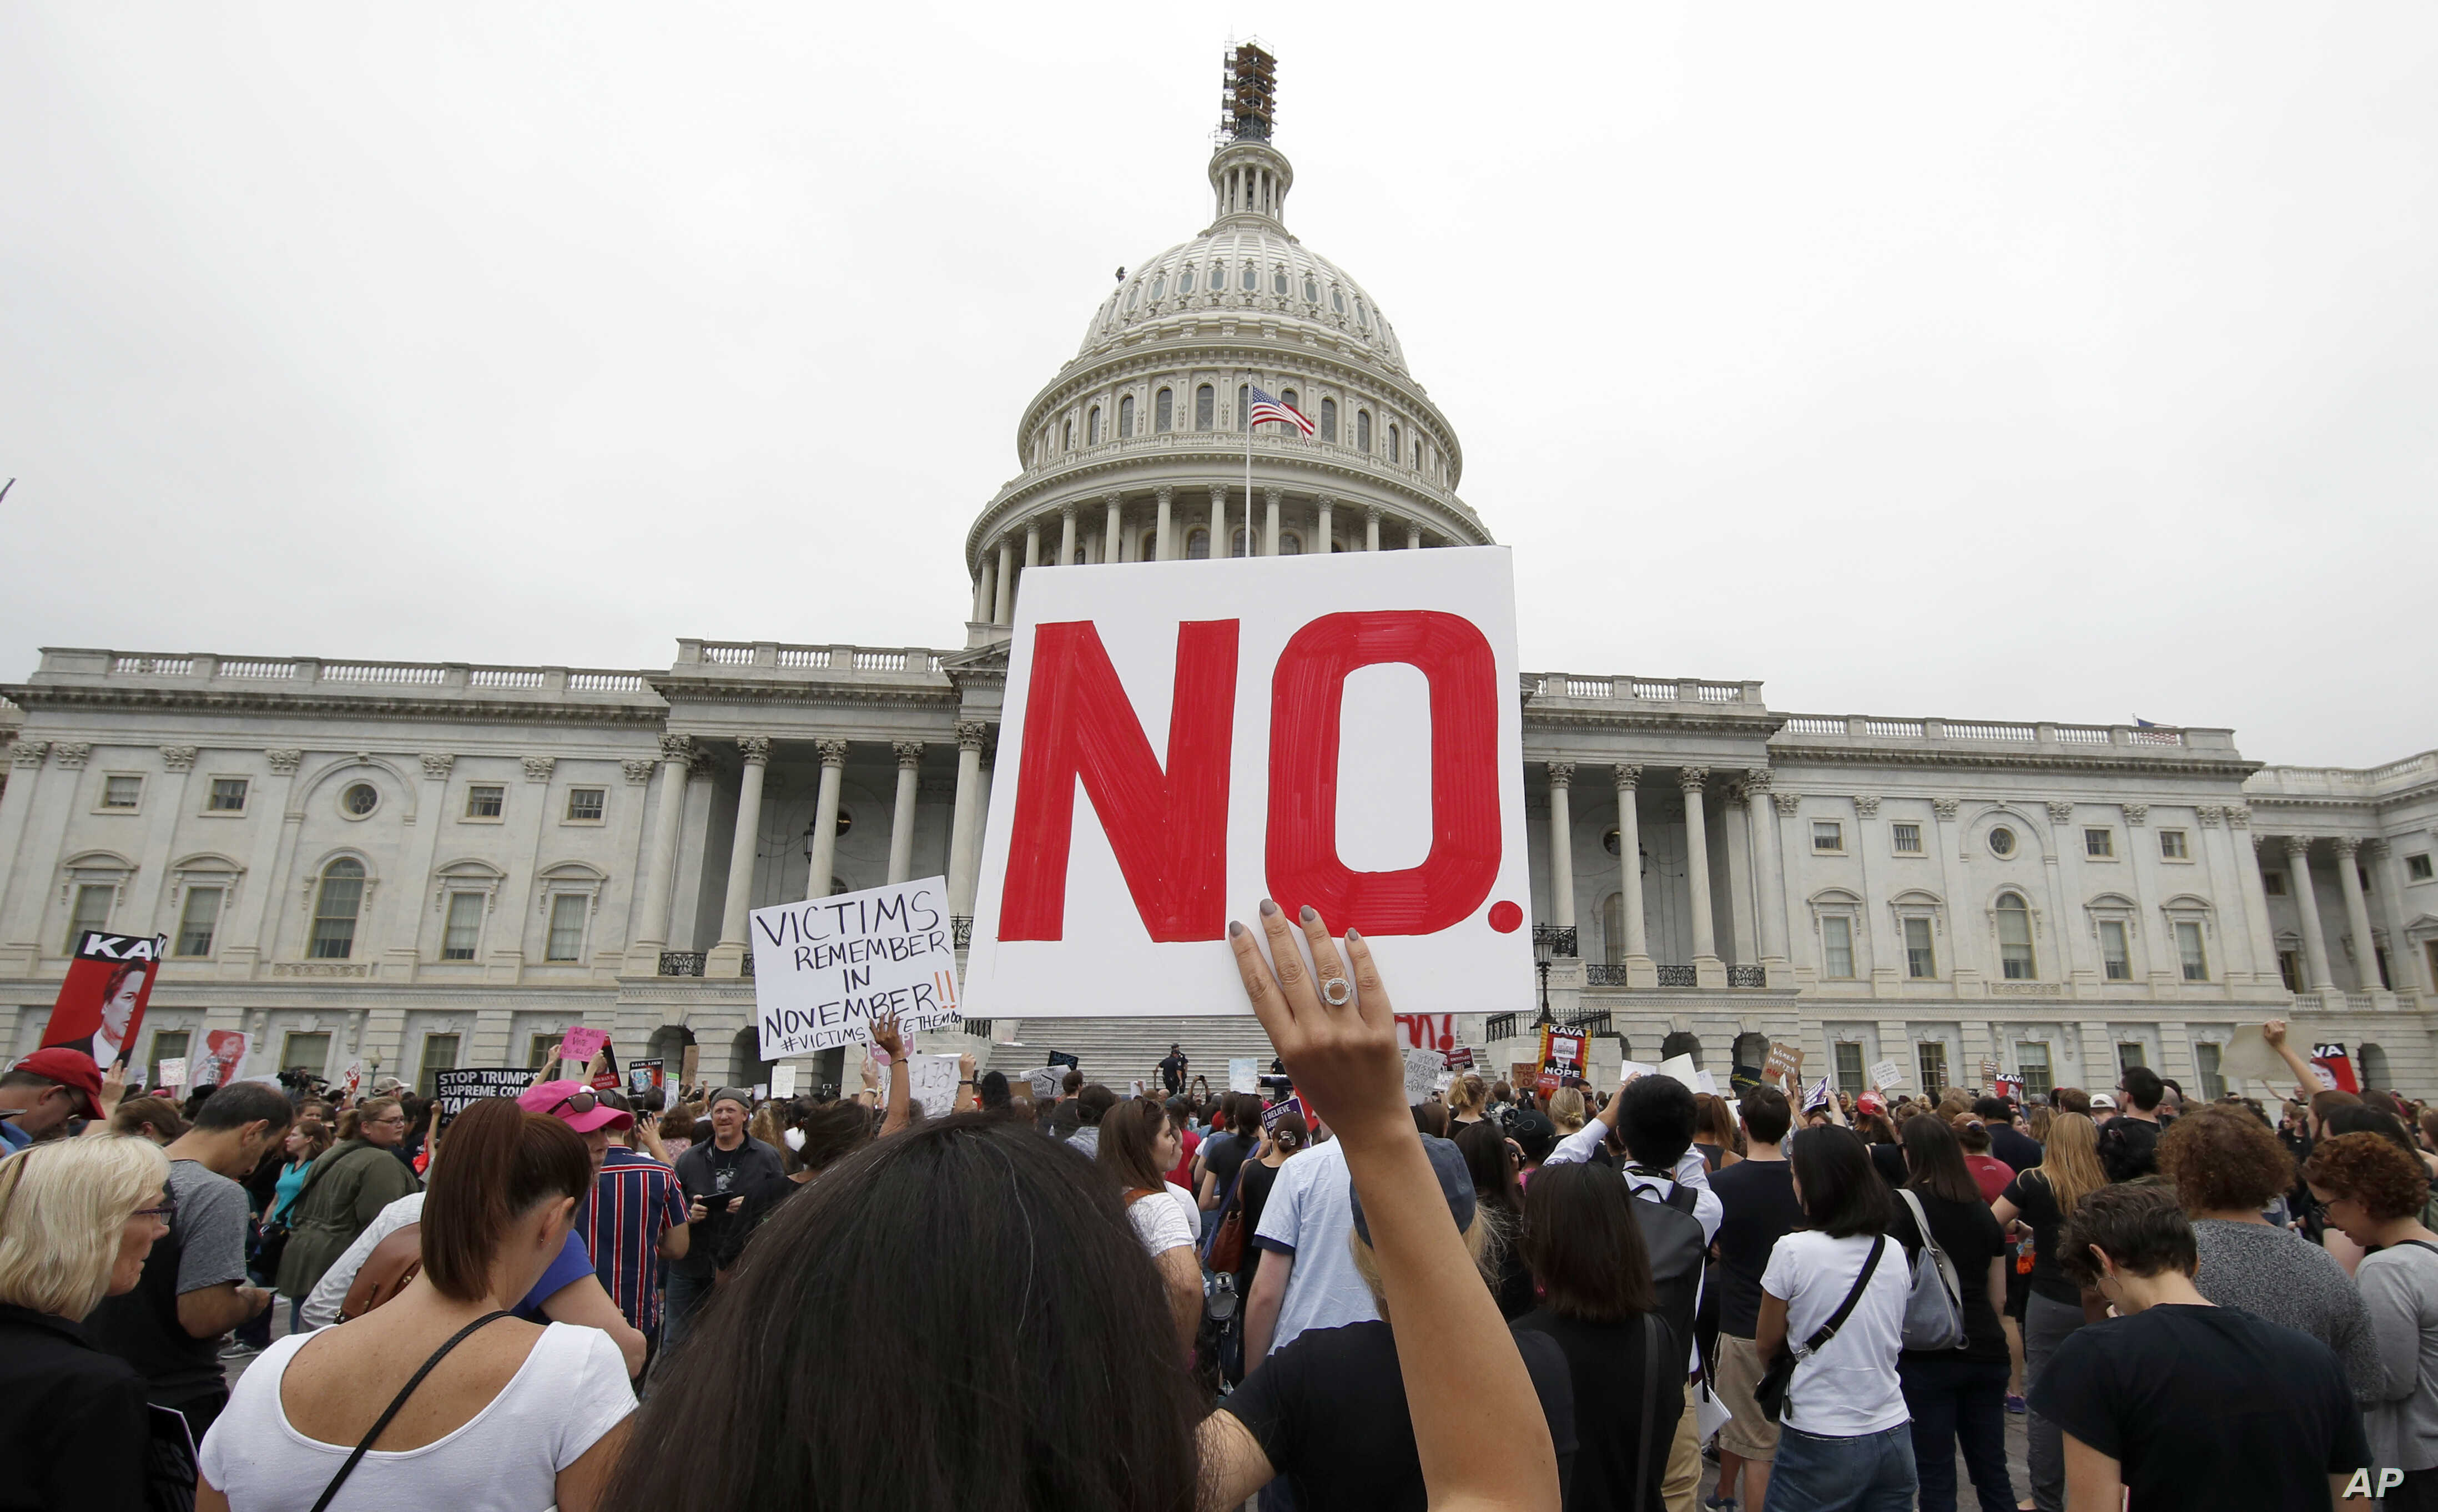 Activists demonstrate in the plaza of the East Front of the U.S. Capitol to protest the confirmation vote of Supreme Court nominee Brett Kavanaugh on Capitol Hill, Oct. 6, 2018, in Washington.